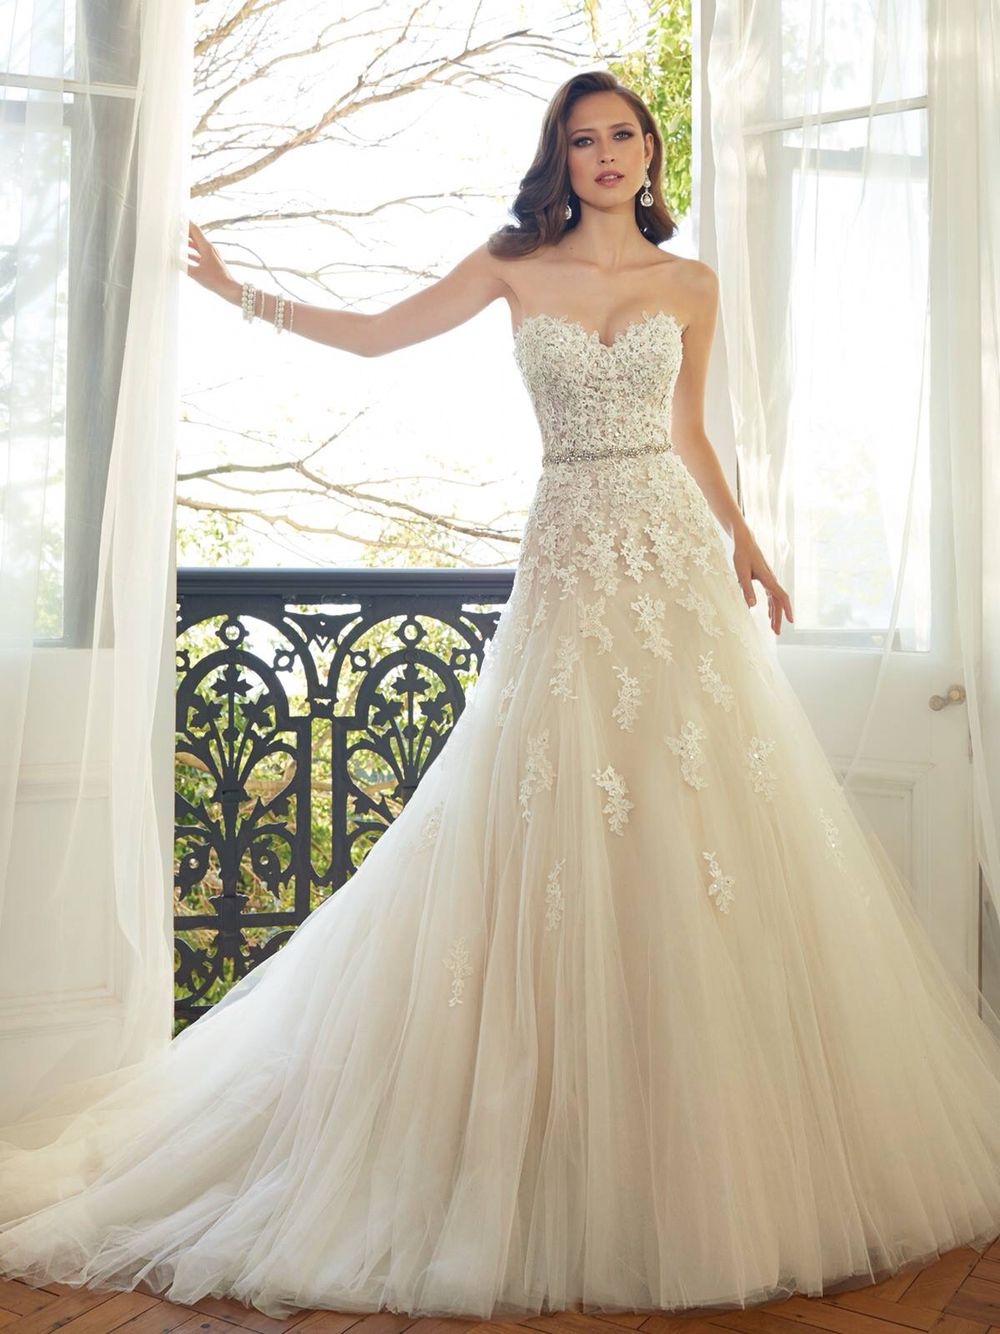 Gorgeous Sophie Tolli wedding gown. Front view. | The BIG DAY!! Your ...